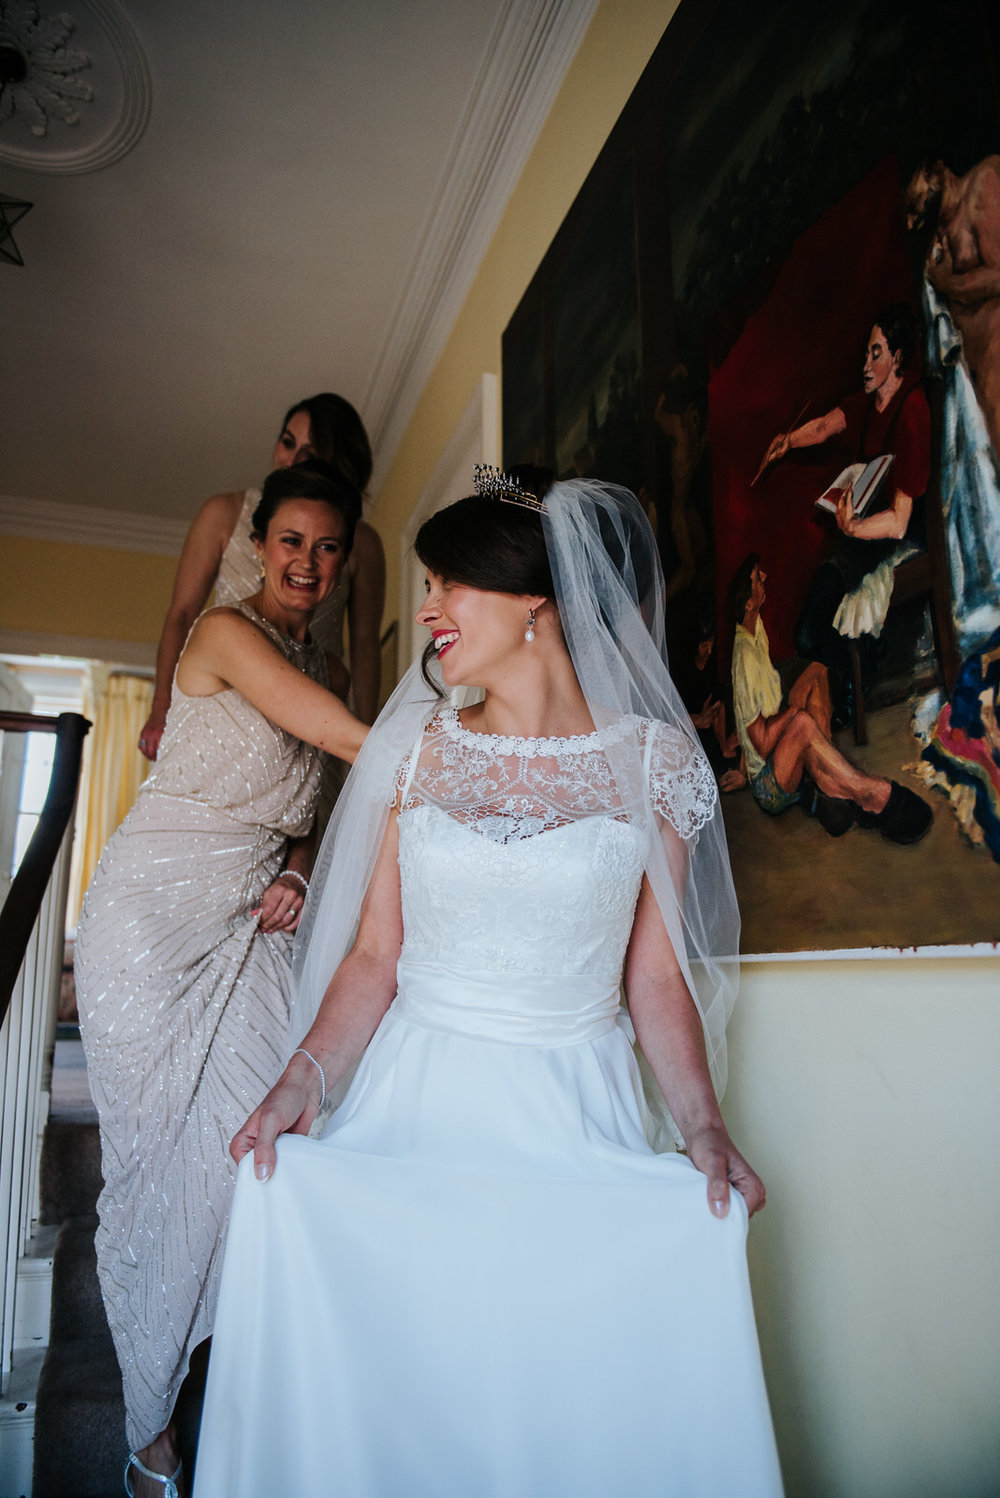 Bride looks in the mirror for the first time since putting dress